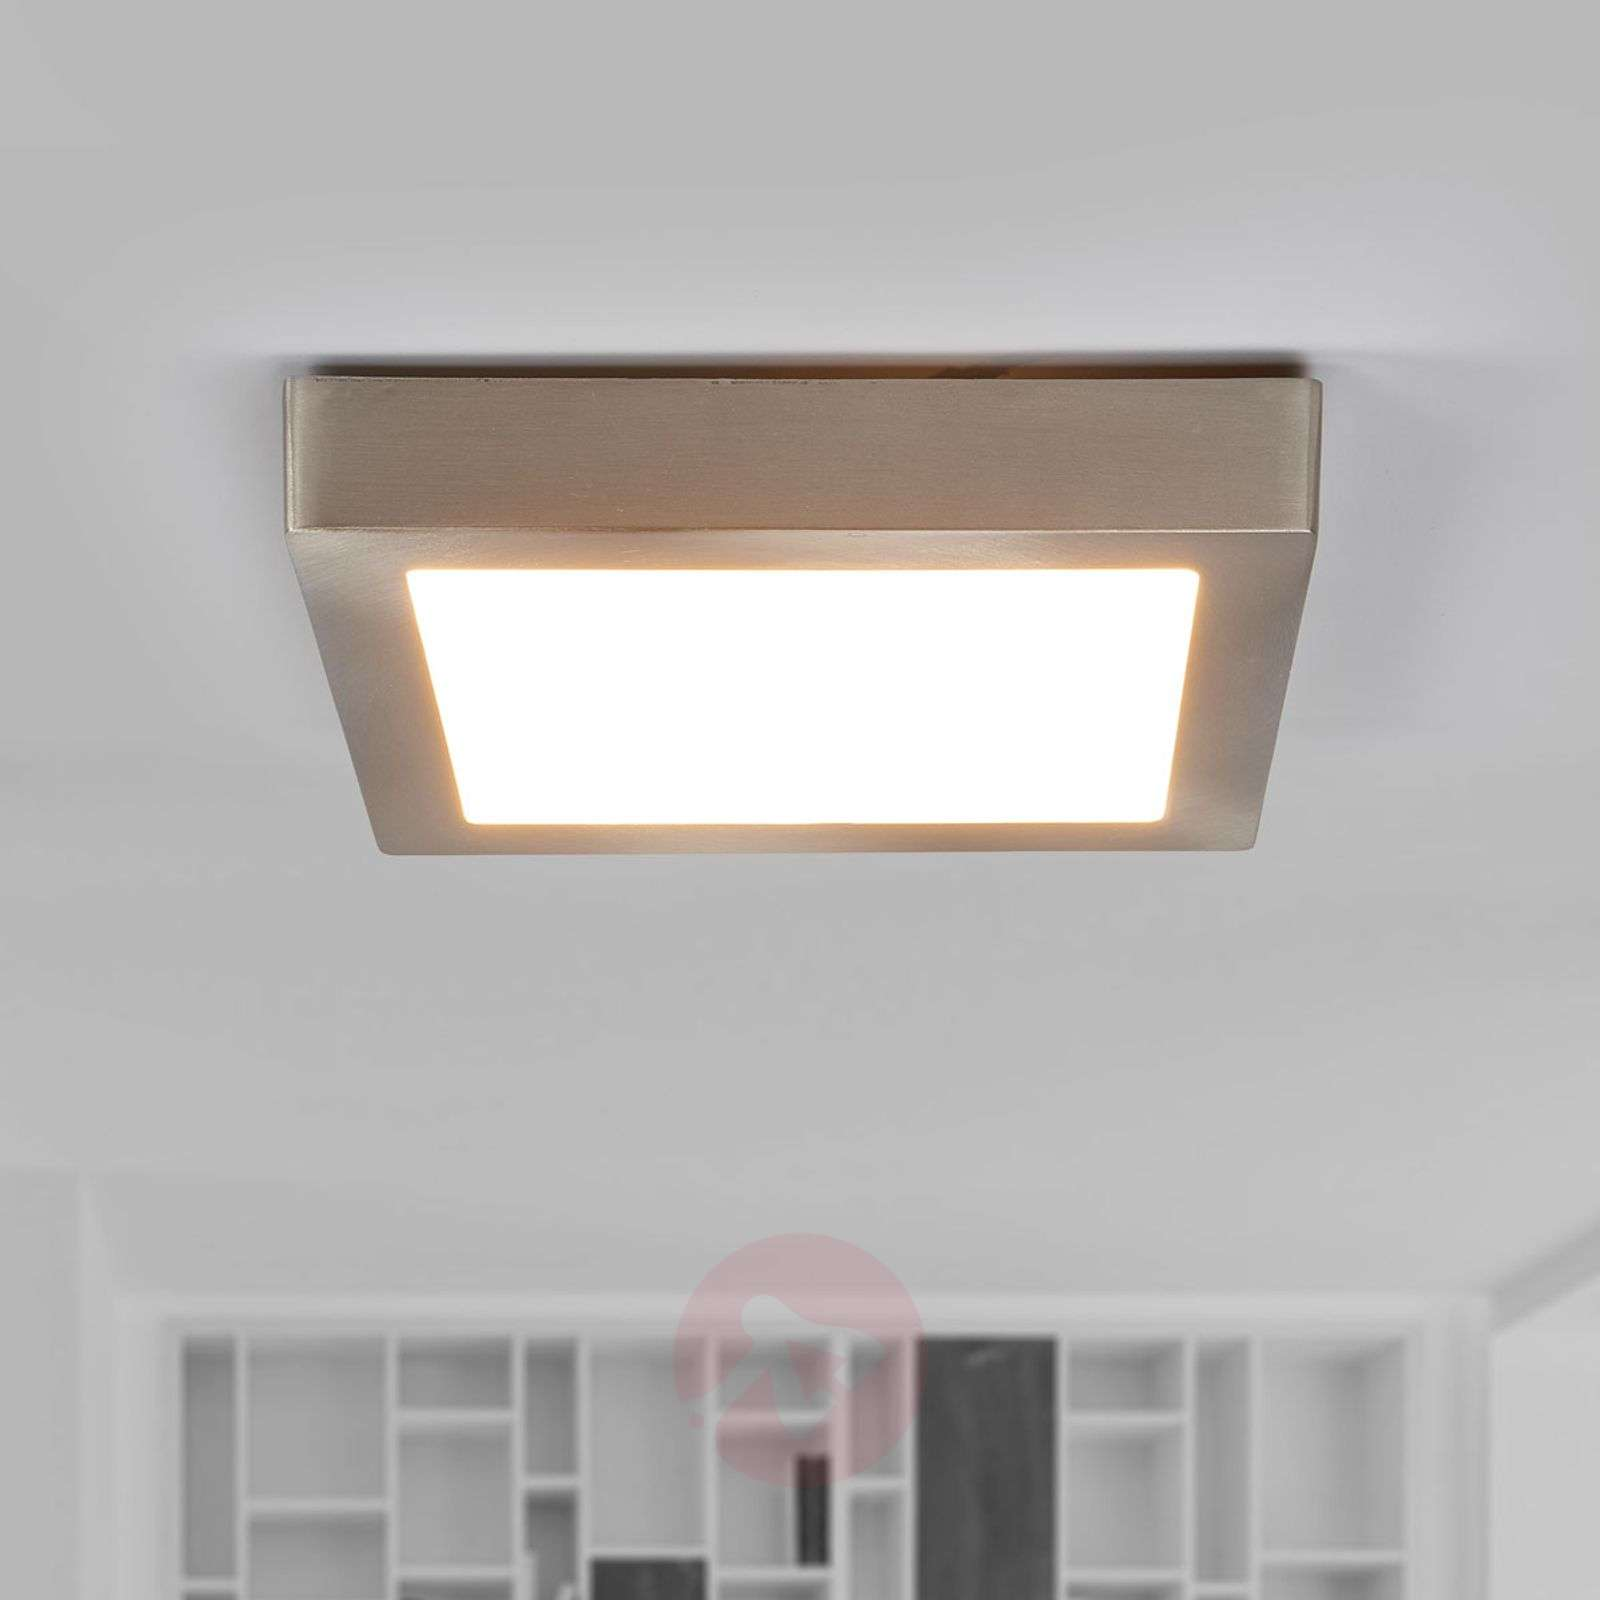 Versatile Zeus LED ceiling light-9004777-01